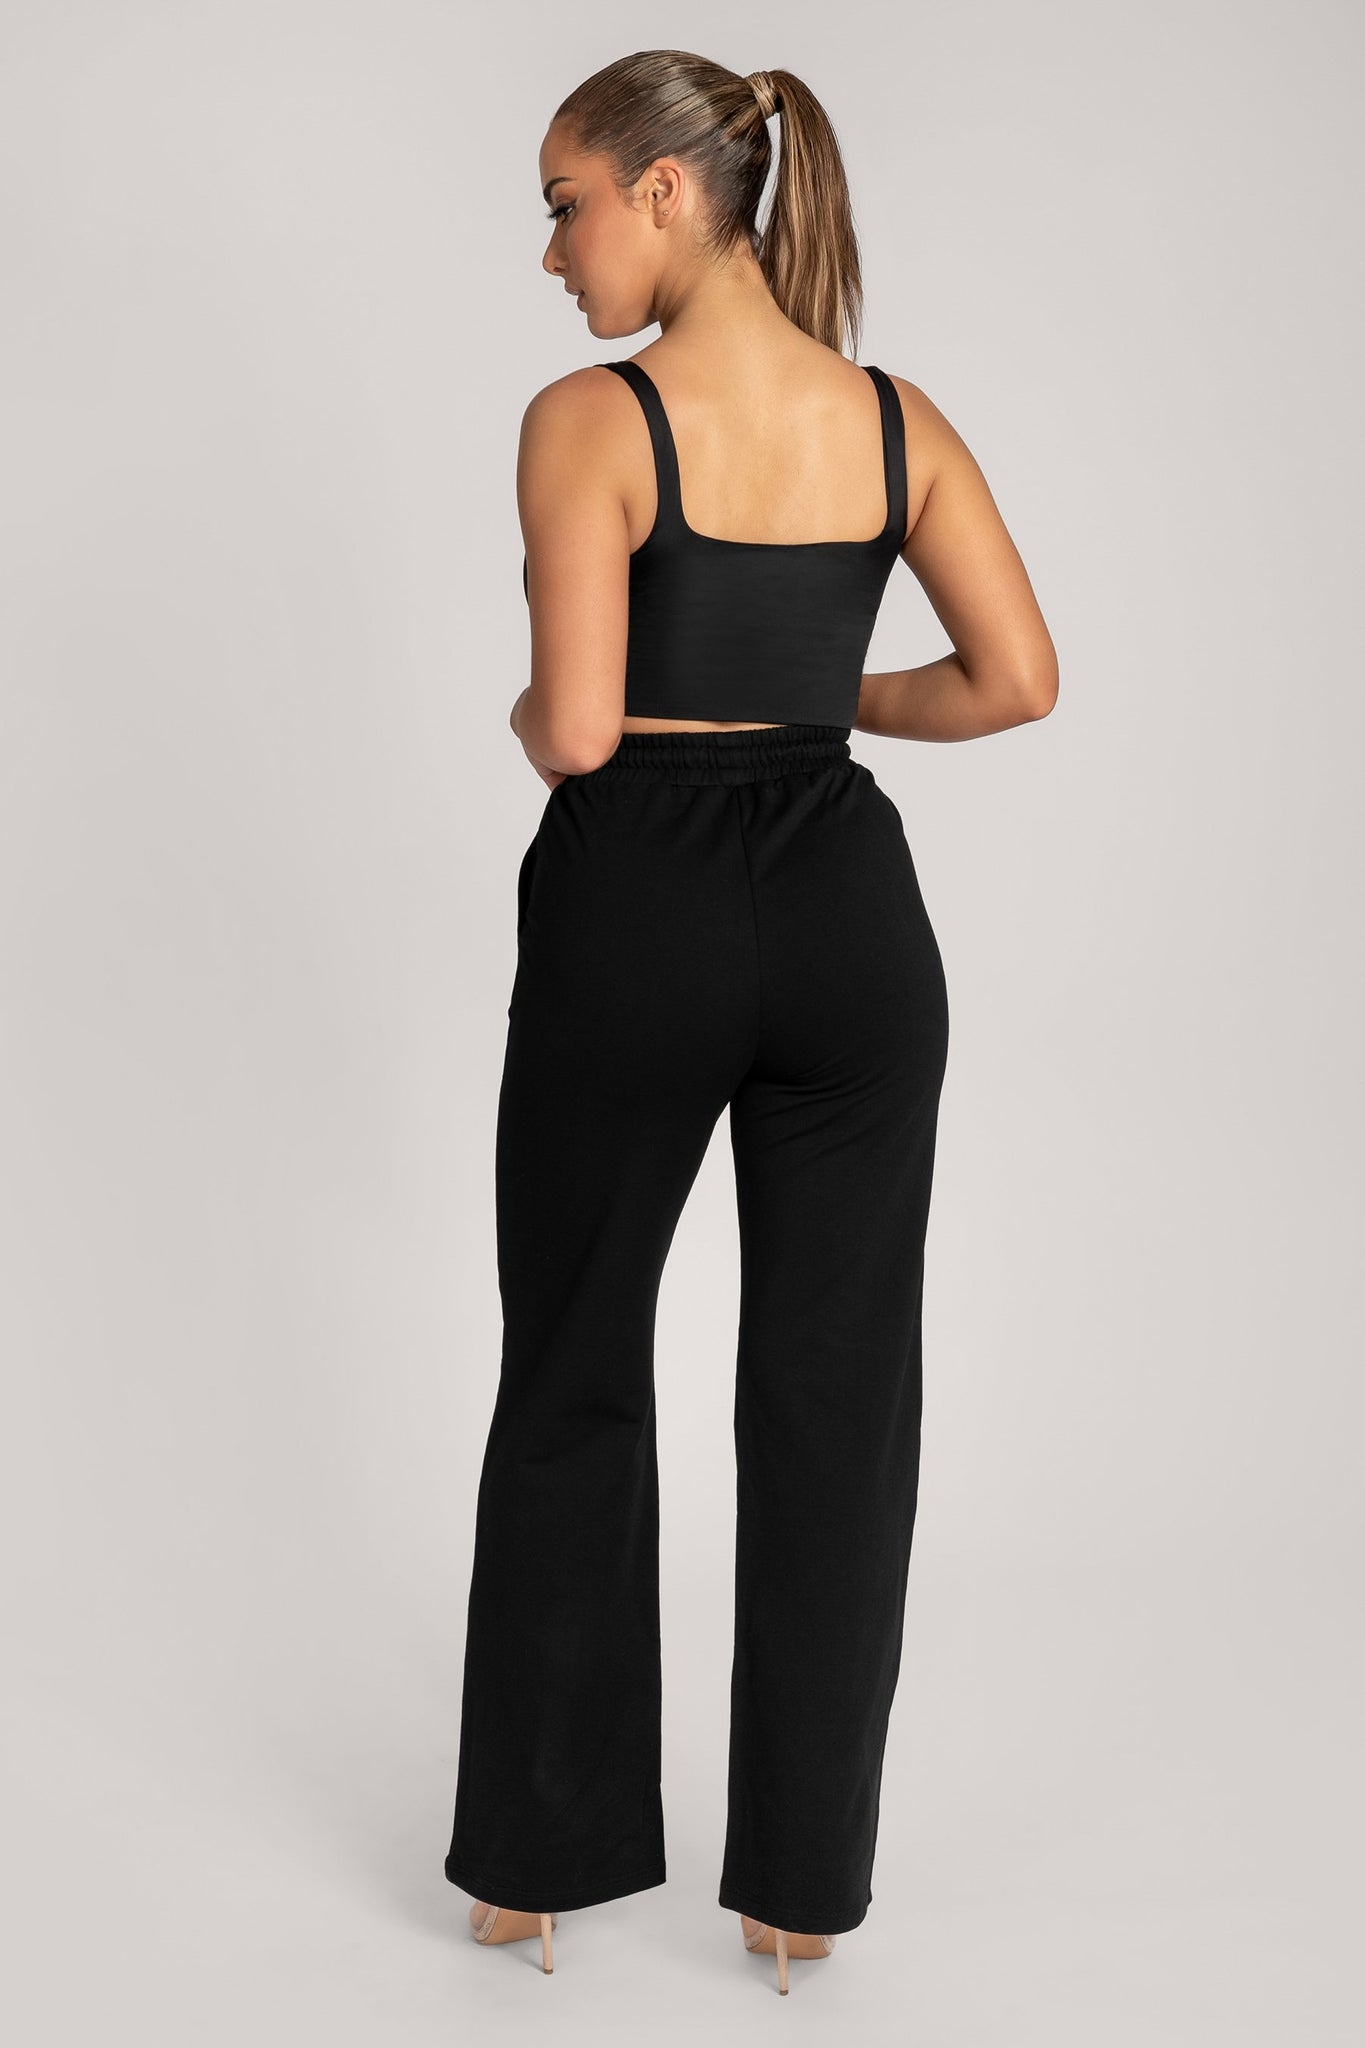 Jazmin Scoop Neck Crop Top - Black - MESHKI